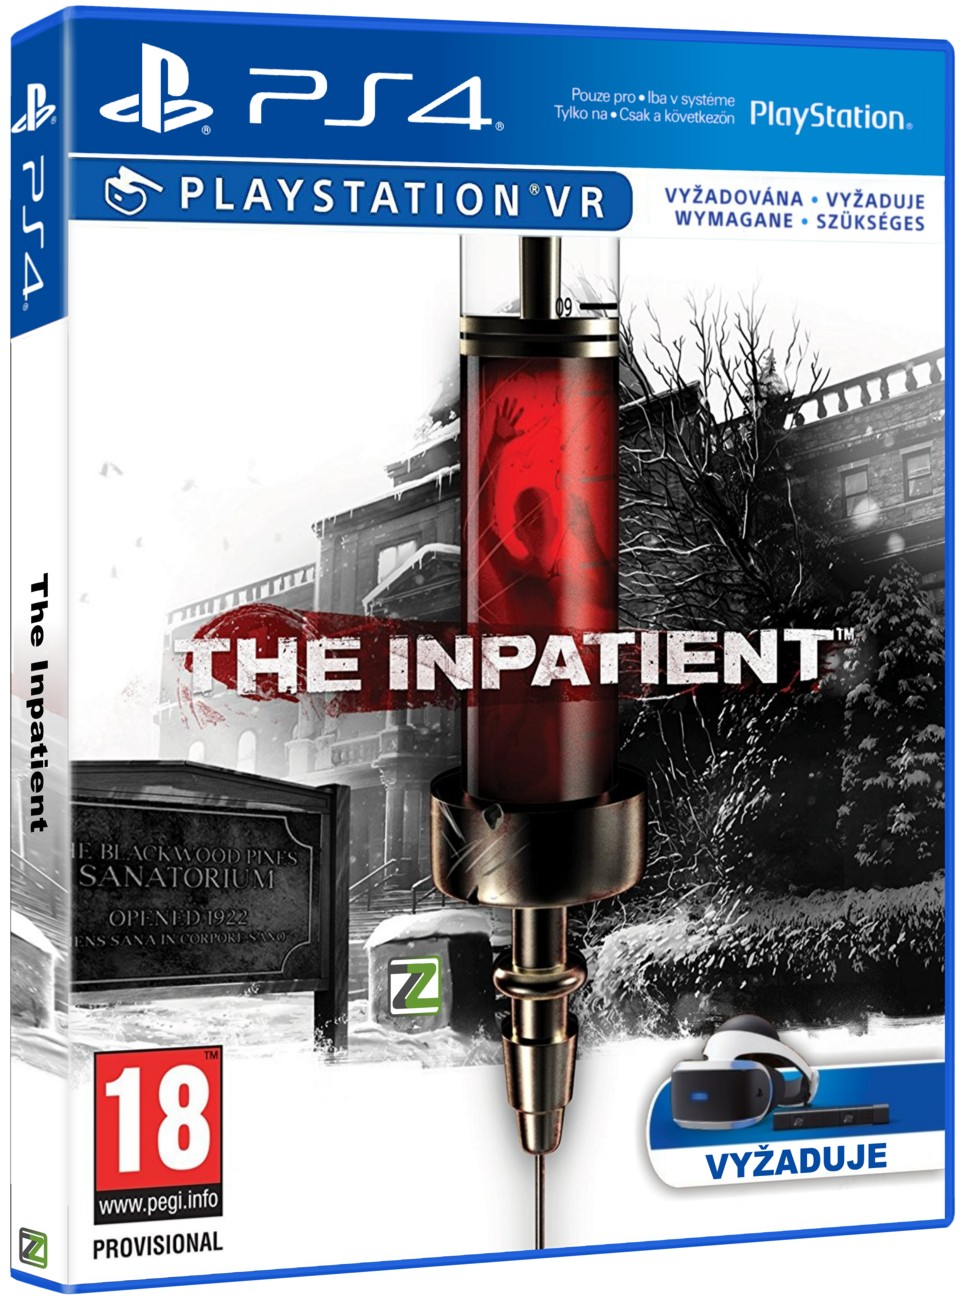 The Inpatient - PS4 VR